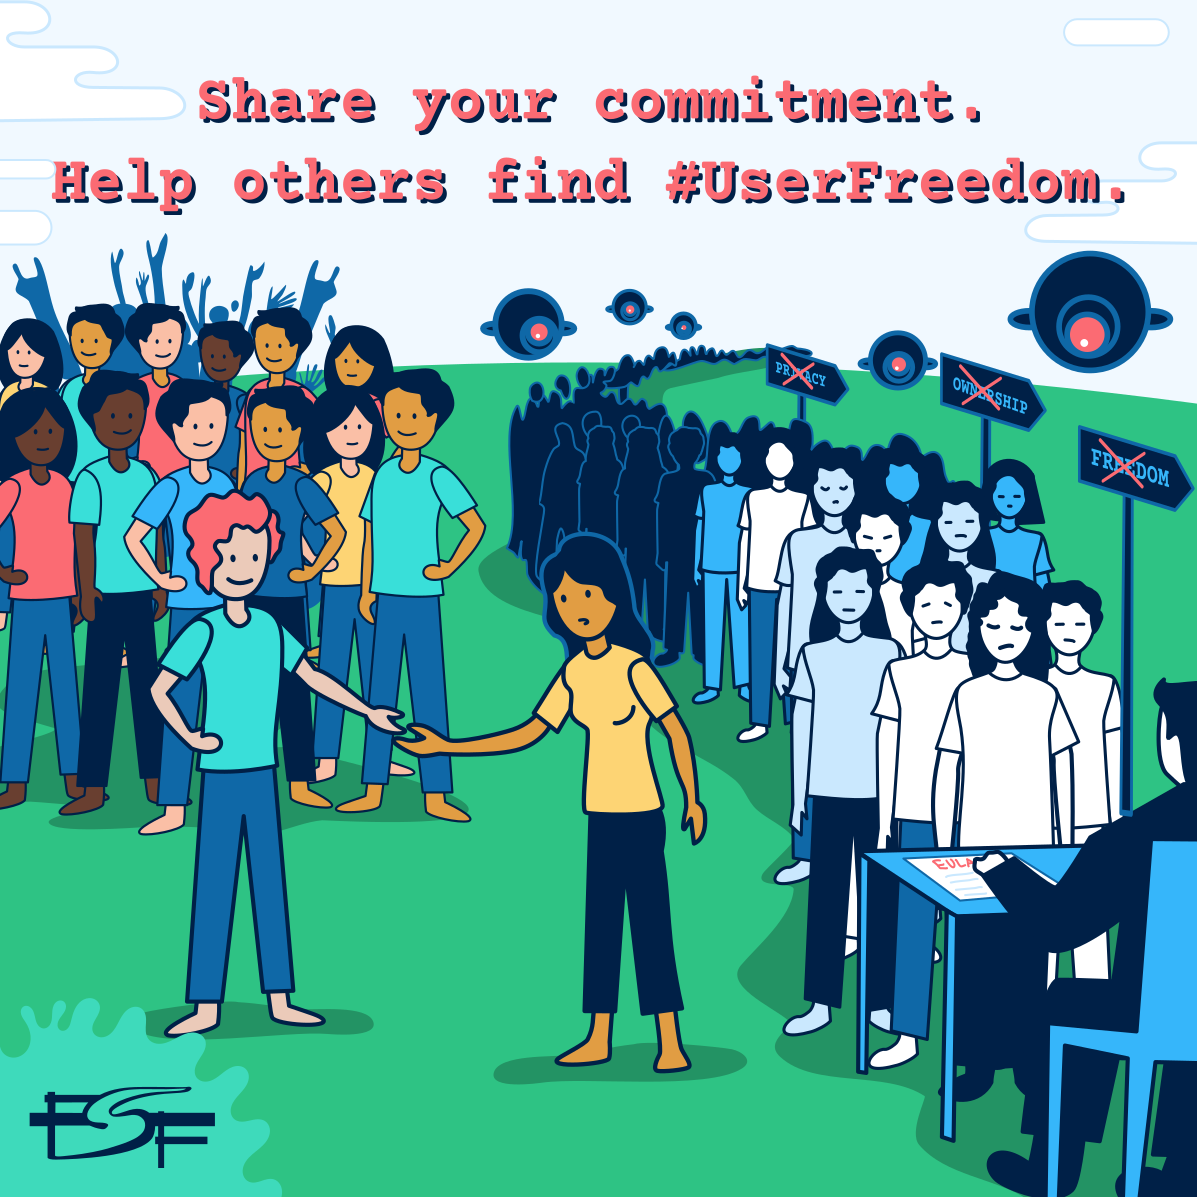 Illustration of 2 groups of people. One person reaches out to another